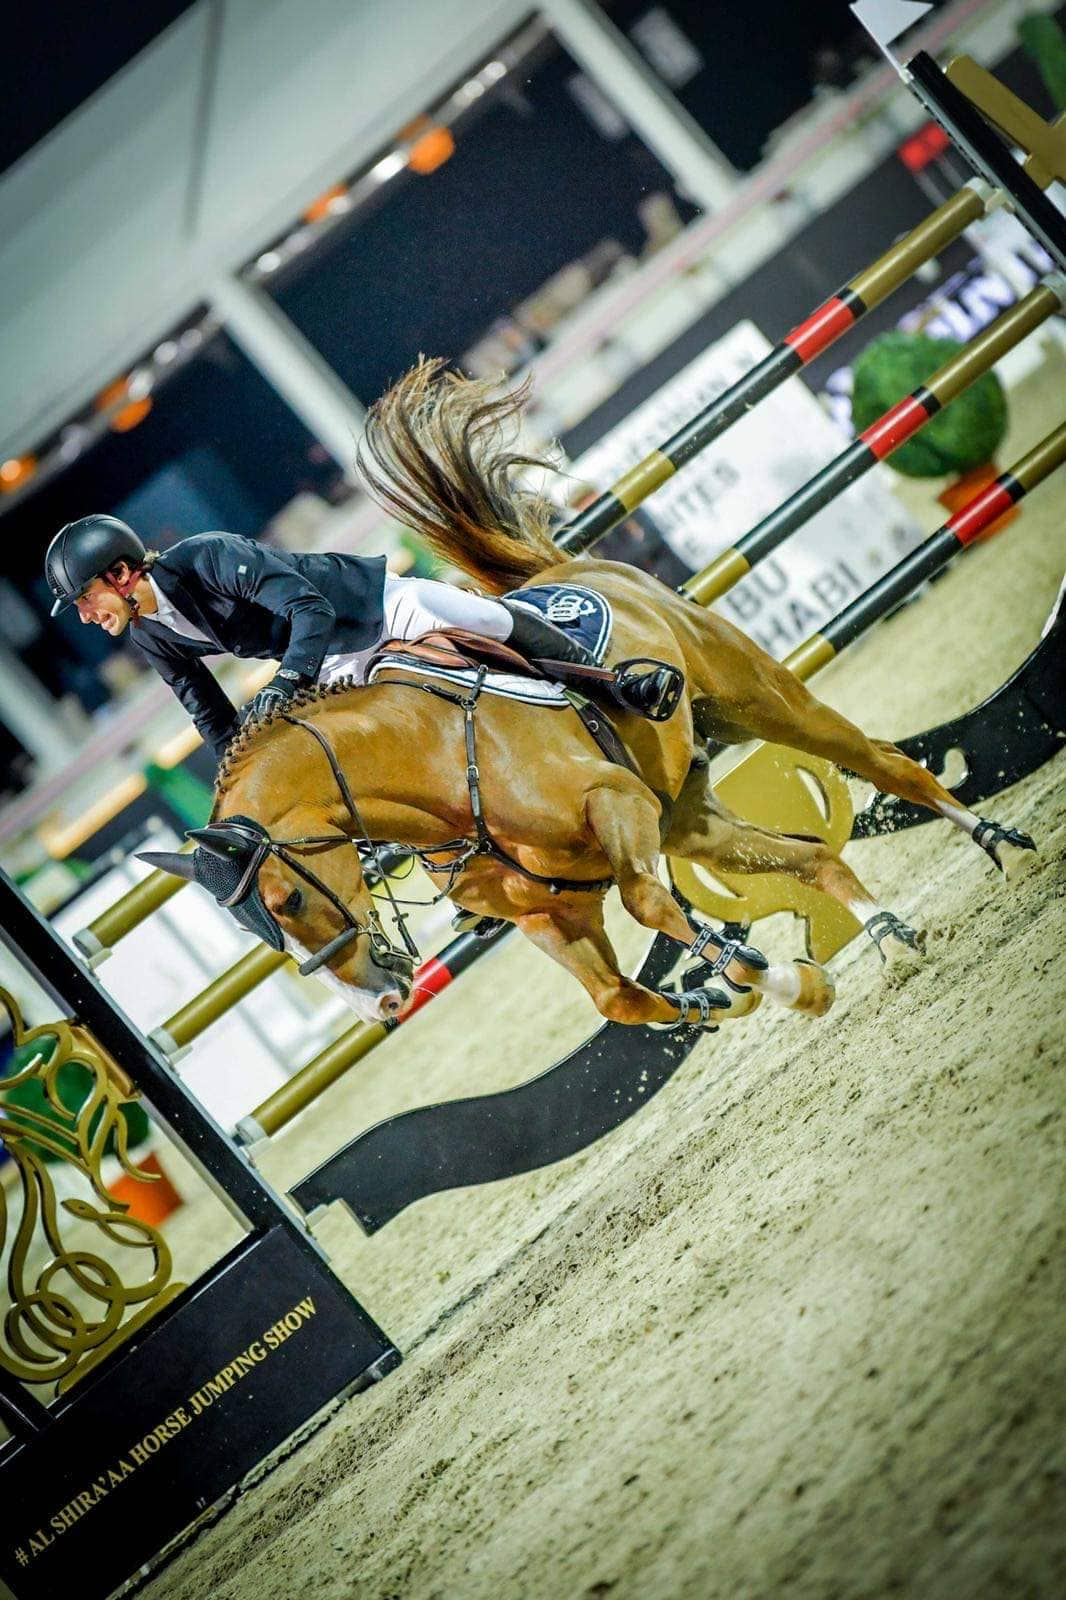 Marquilhas beats Whitaker's in thrilling qualifier Abu Dhabi